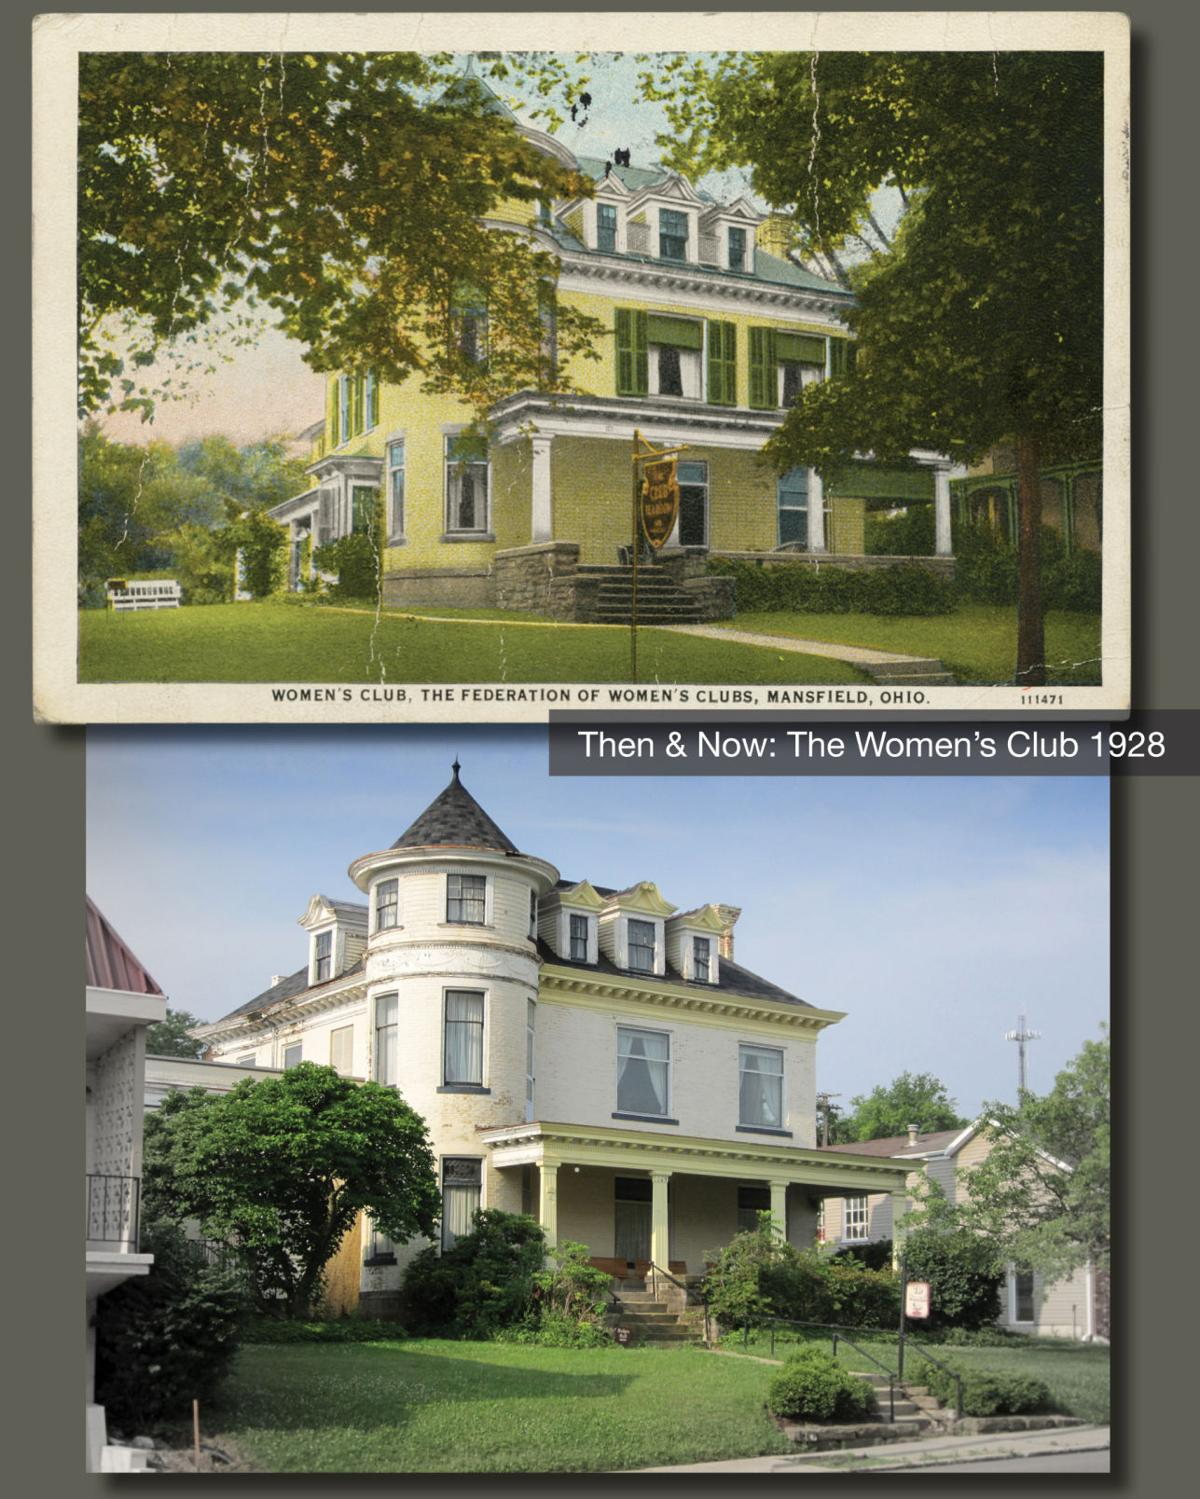 Then & Now: The Women's Club